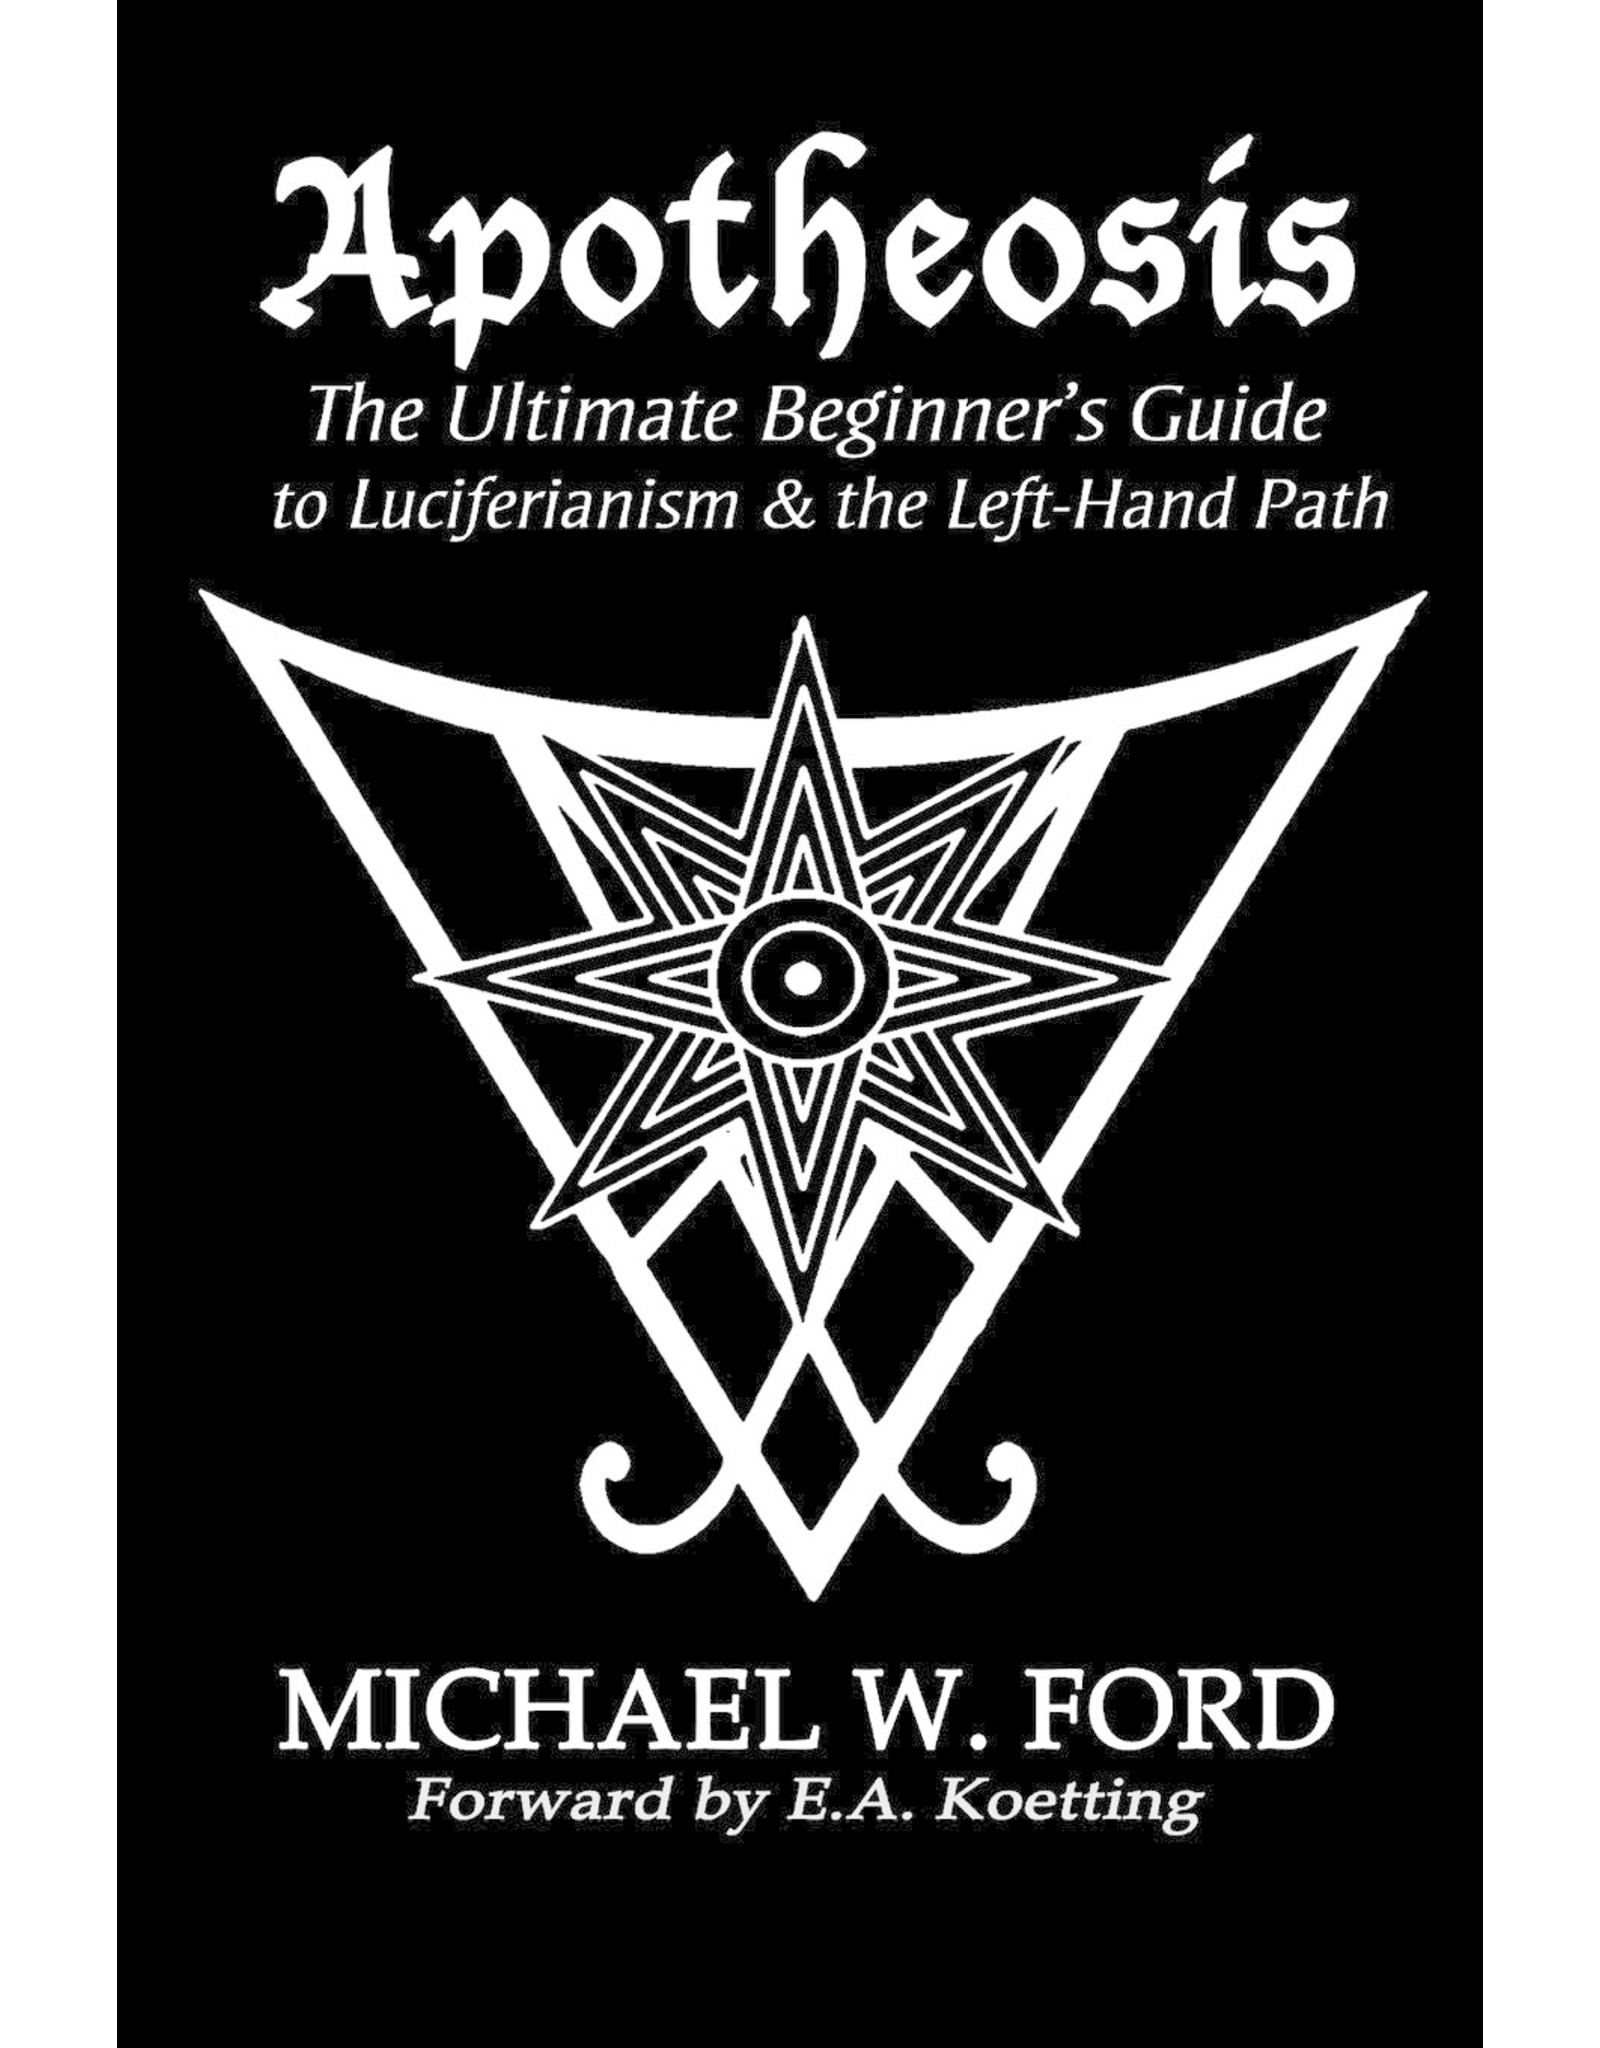 Apotheosis: The Ultimate Beginner's Guide to Luciferianism & the Left-Hand Path